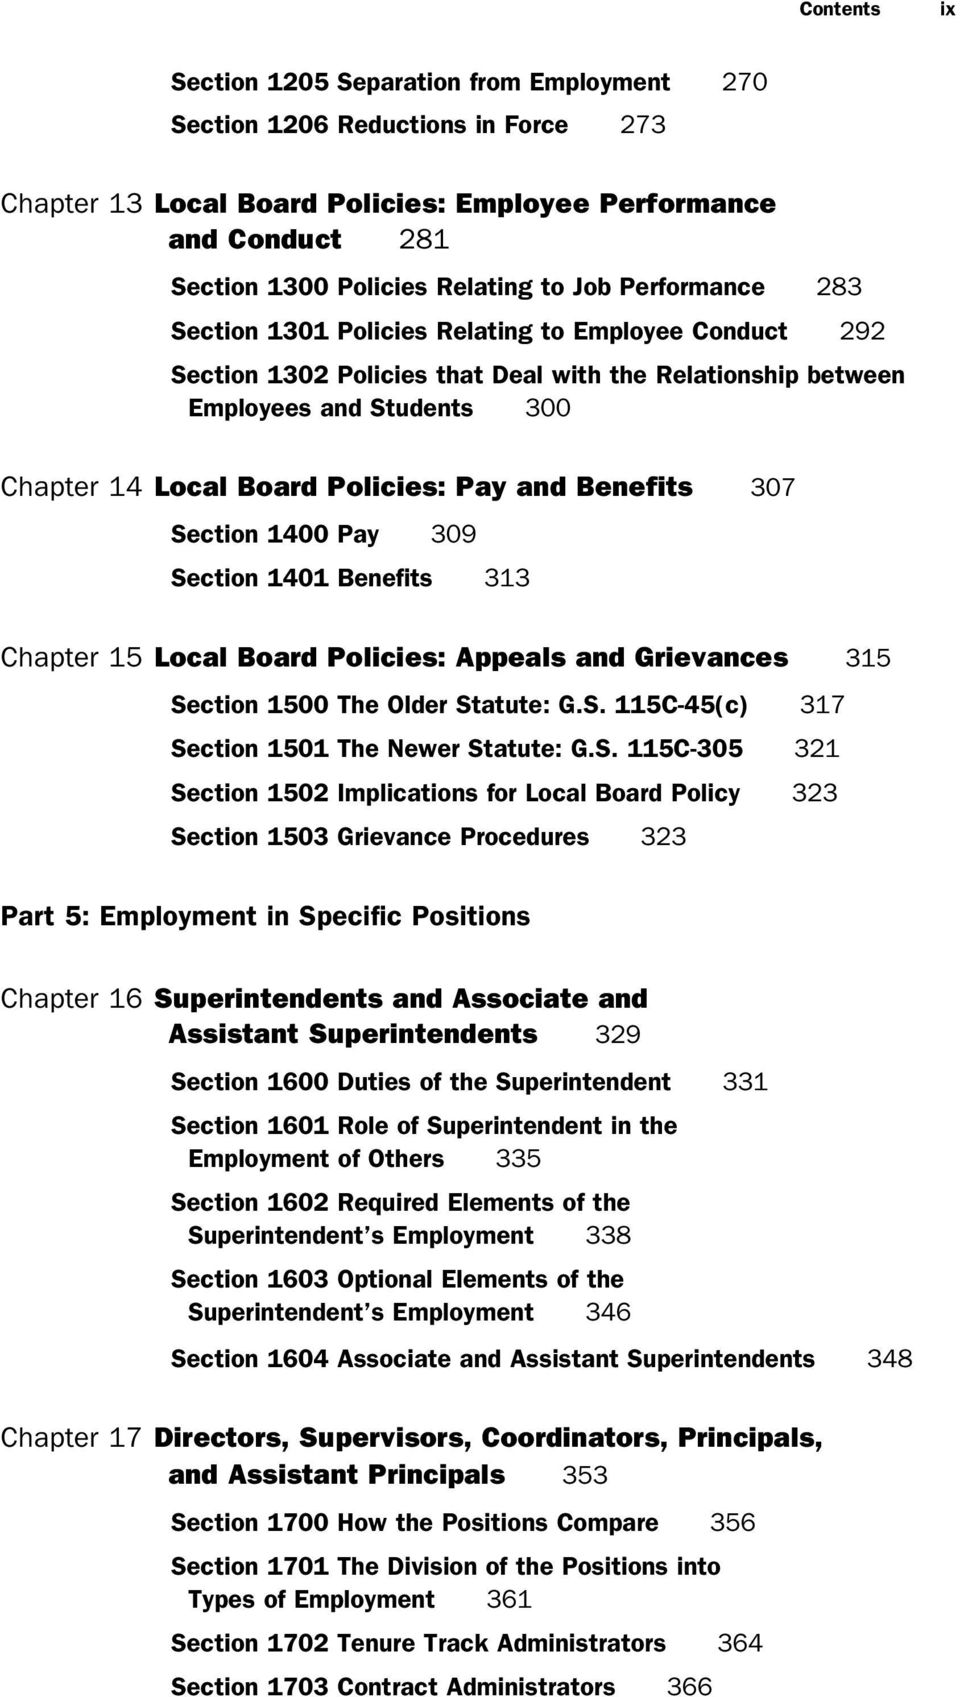 Pay and Benefits 307 Section 1400 Pay 309 Section 1401 Benefits 313 Chapter 15 Local Board Policies: Appeals and Grievances 315 Section 1500 The Older Statute: G.S. 115C-45(c) 317 Section 1501 The Newer Statute: G.